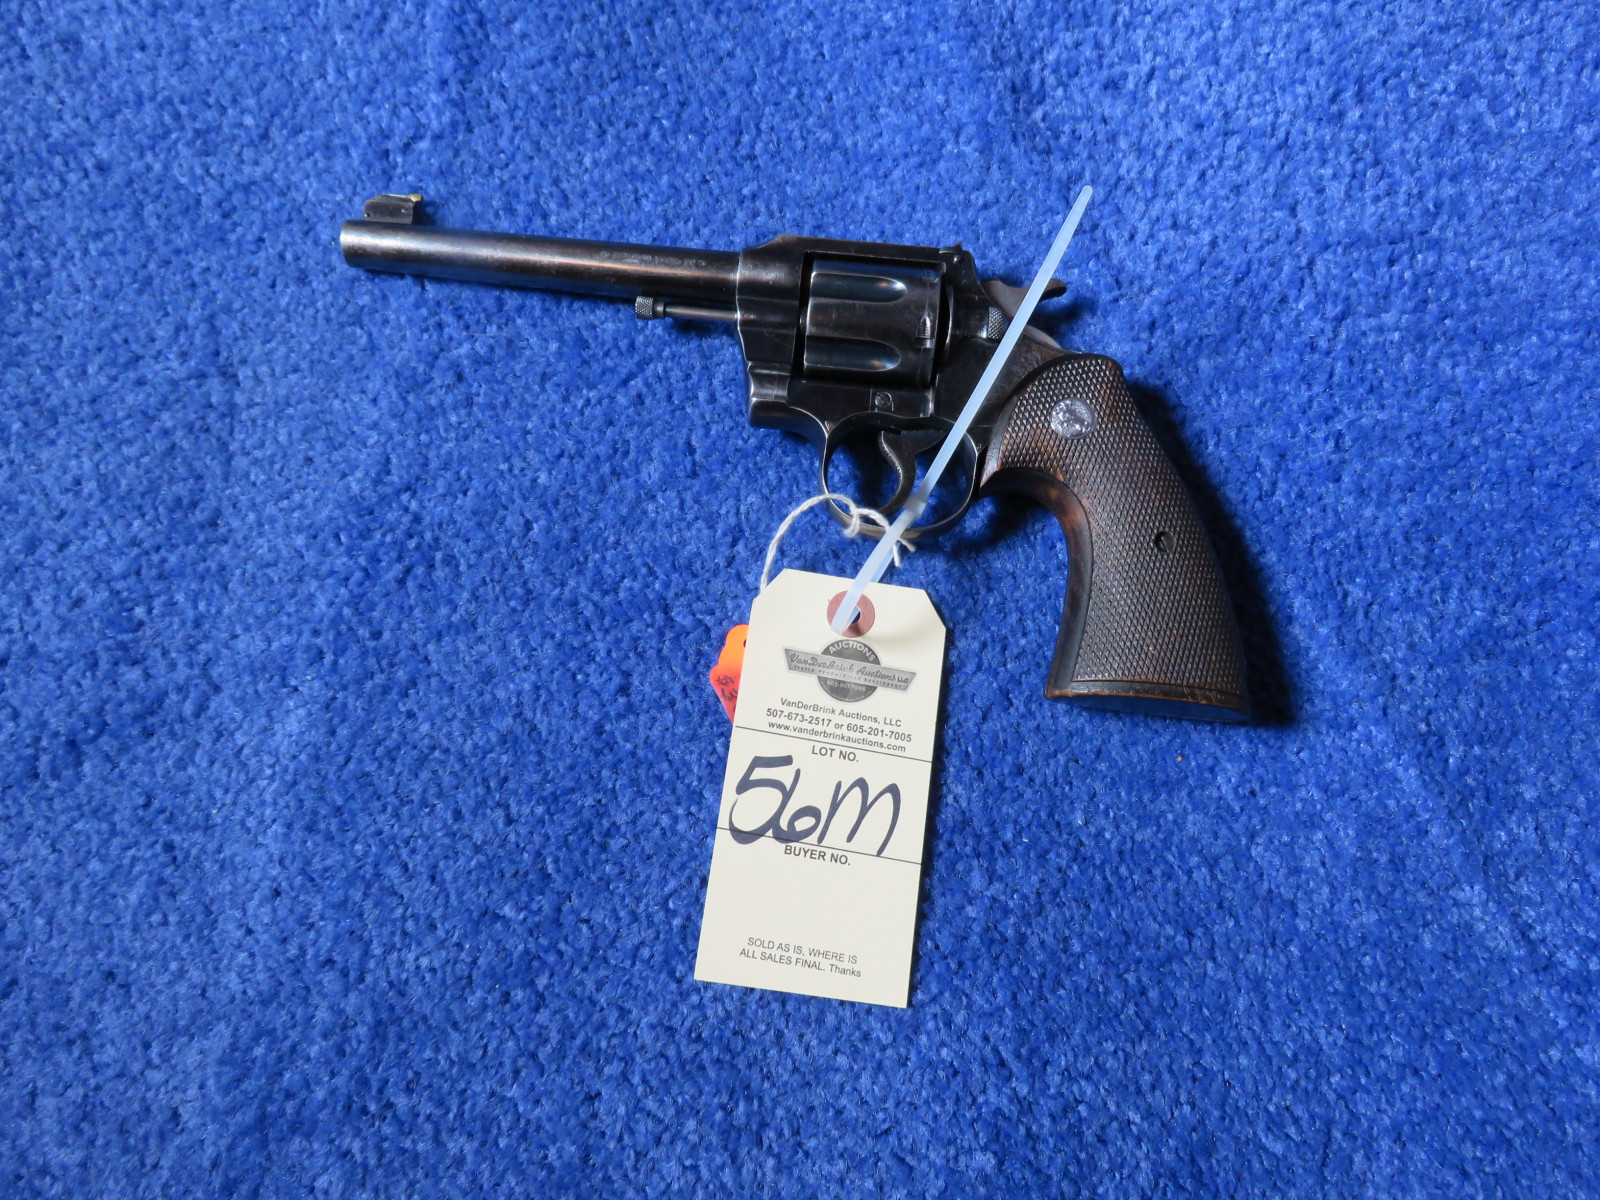 Colt Model 1911 .38 Special Officers Handgun - Image 1